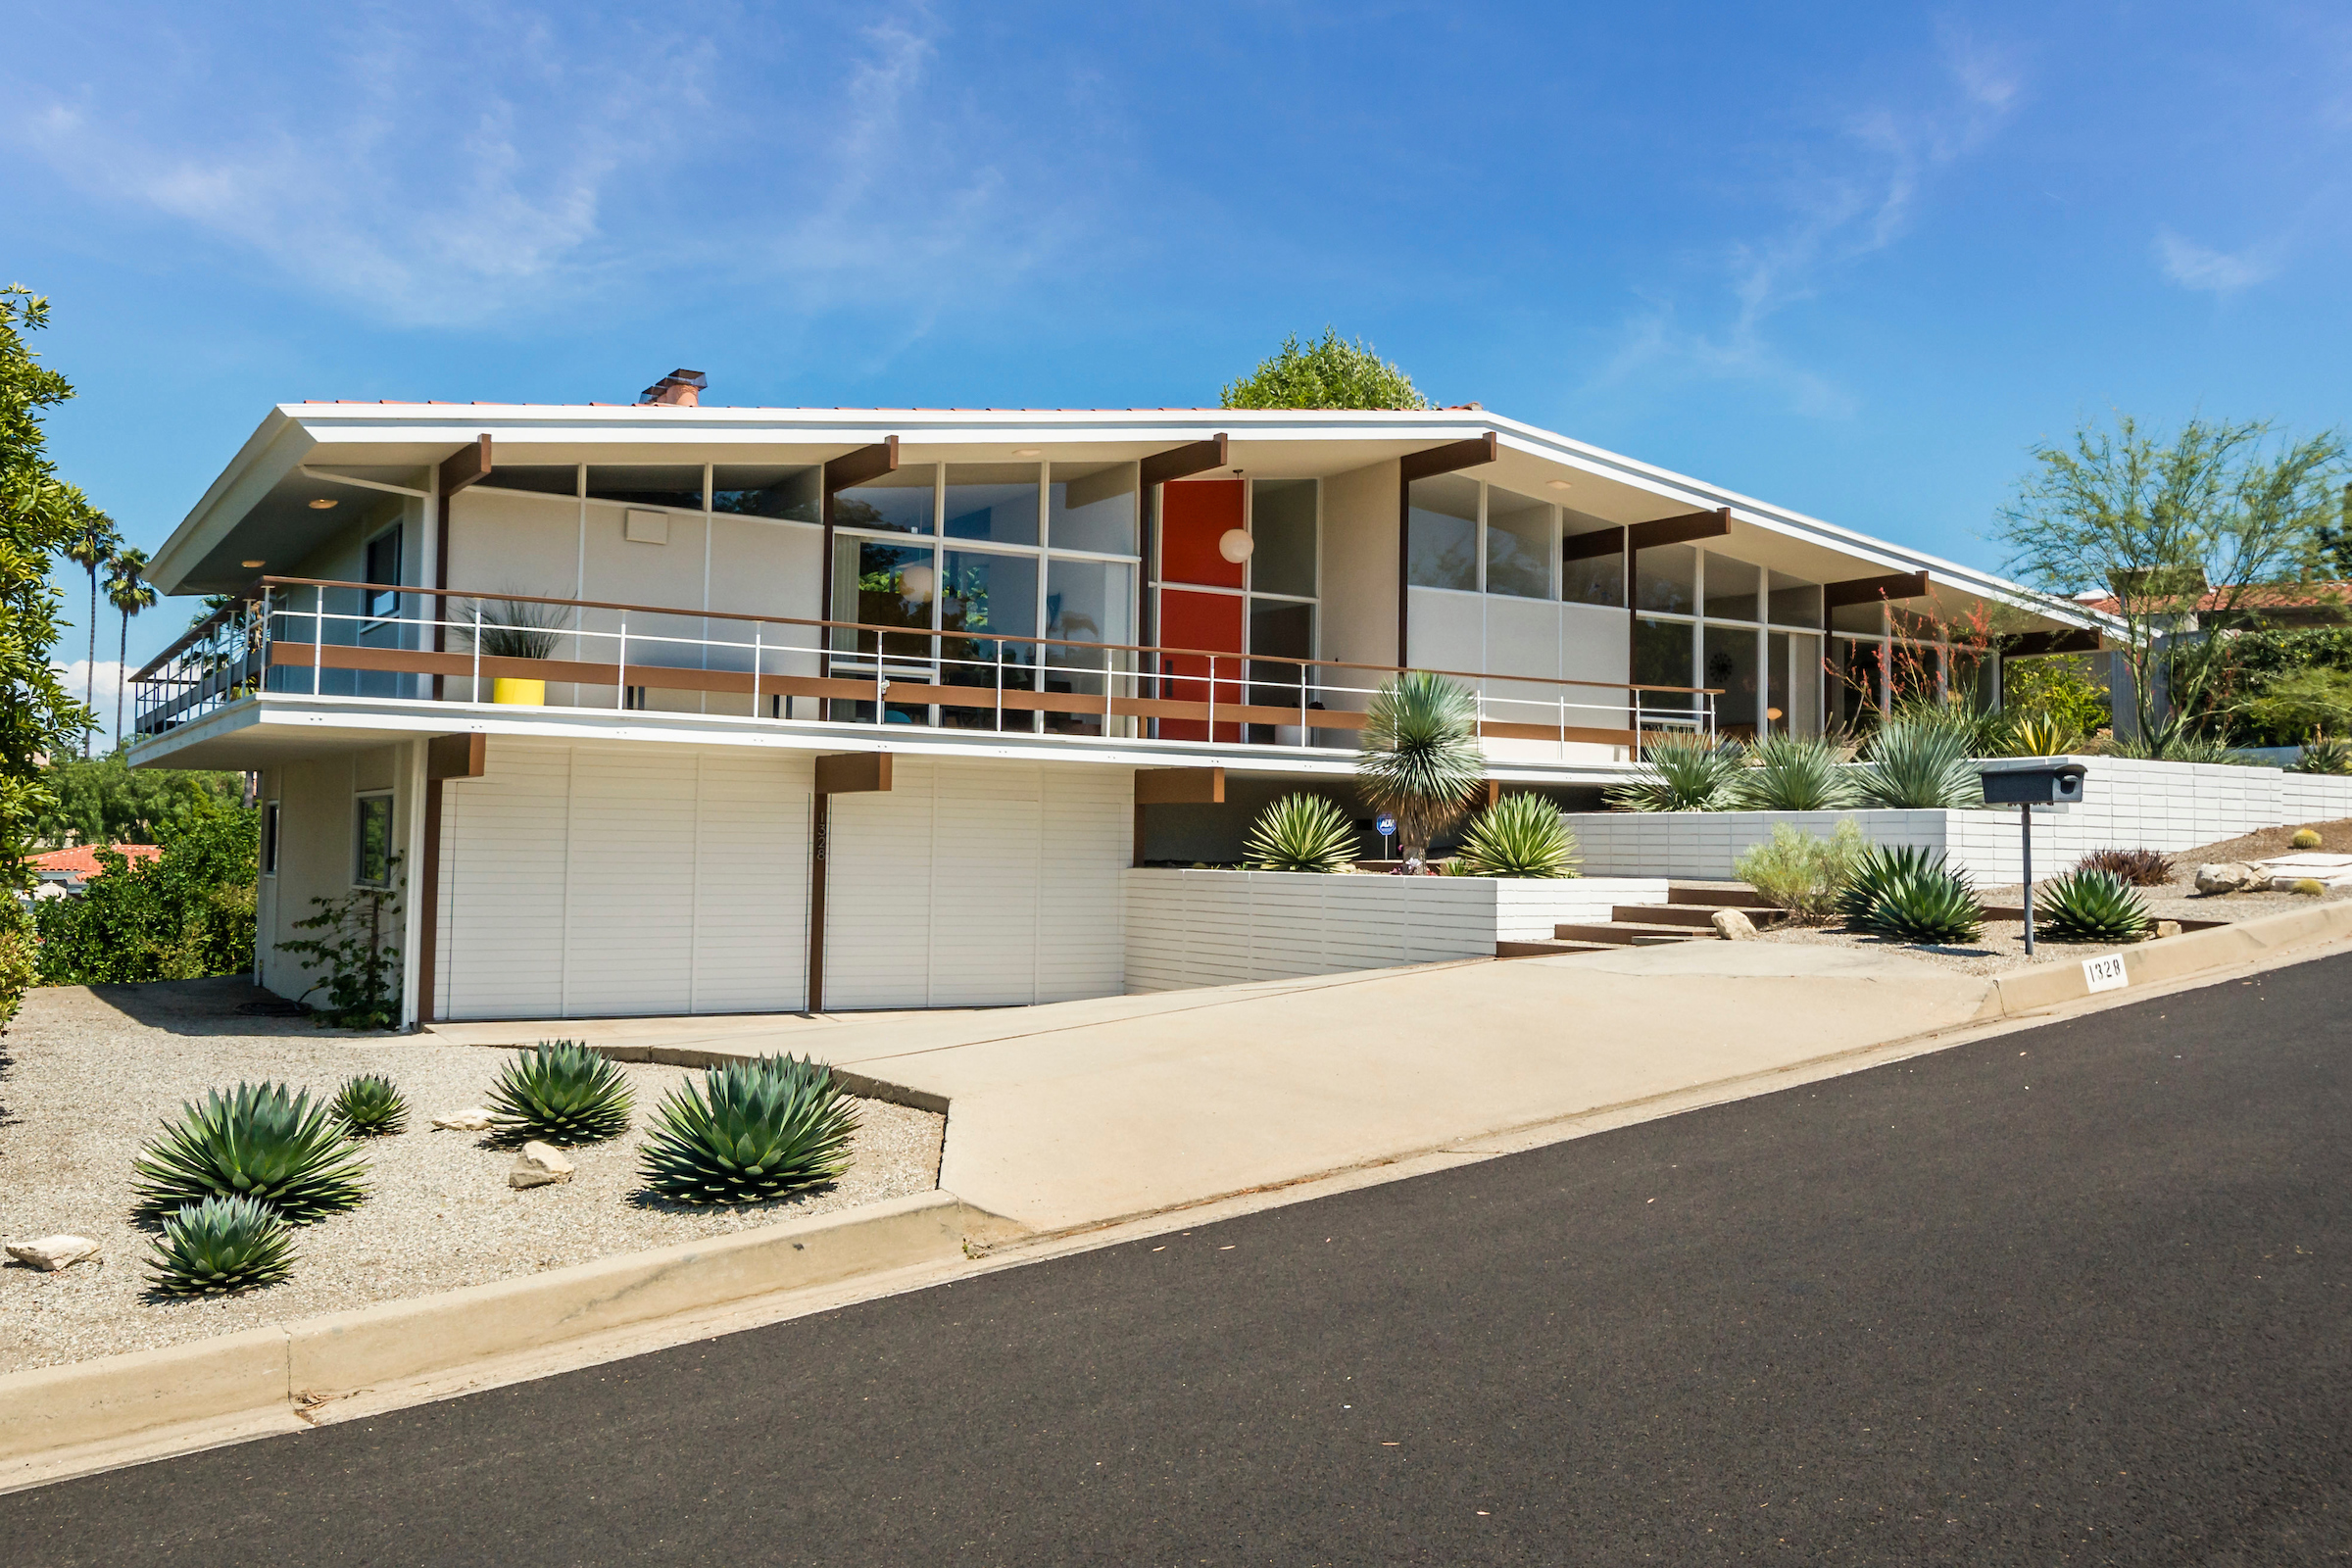 Modern homes los angeles brentwood untouched 1960 mid century modern - Glassy Midcentury Modern In Palos Verdes Estates Seeks 1 8m